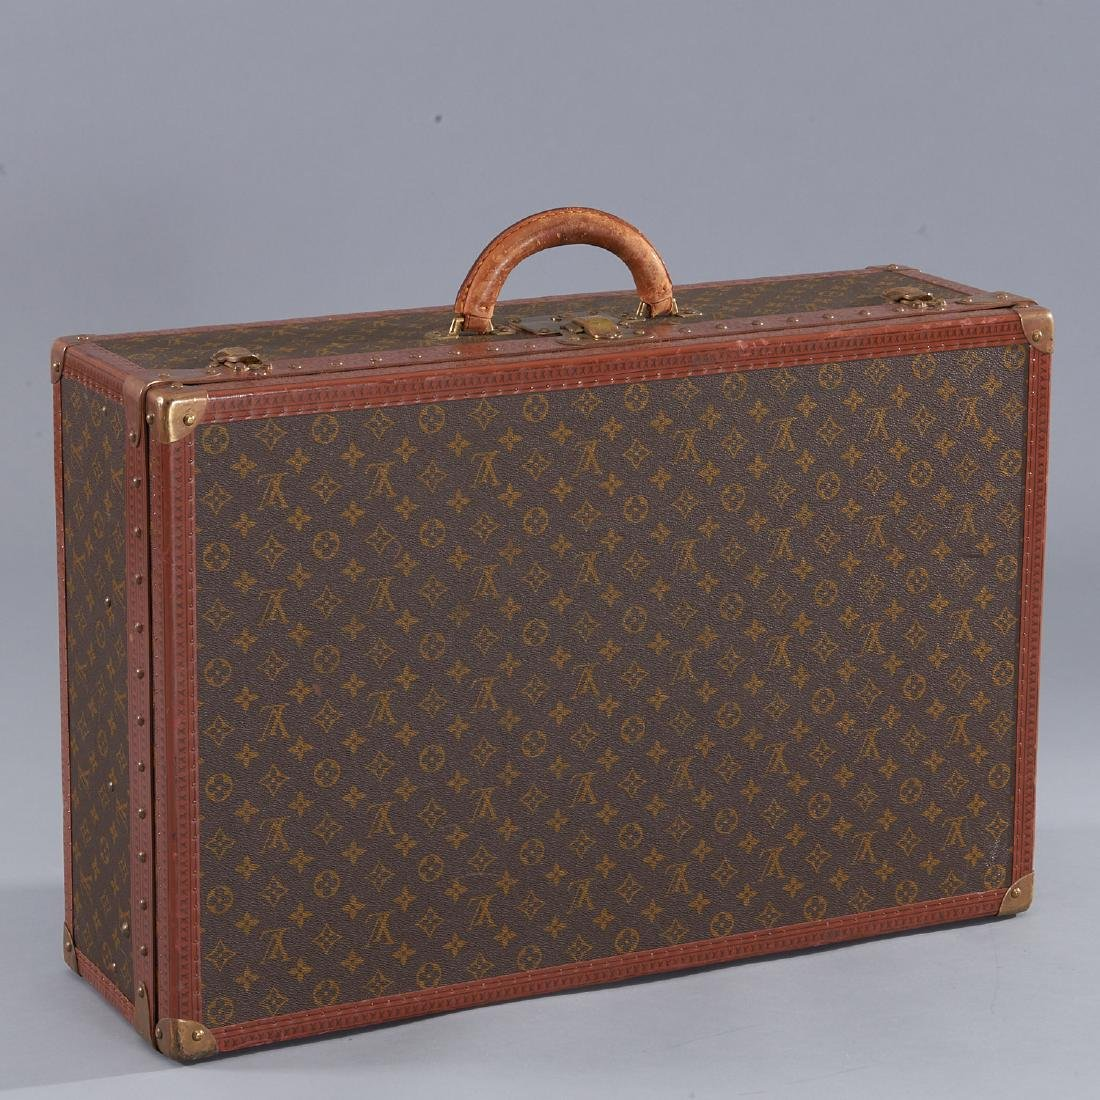 Louis Vuitton Monogram hard sided suitcase